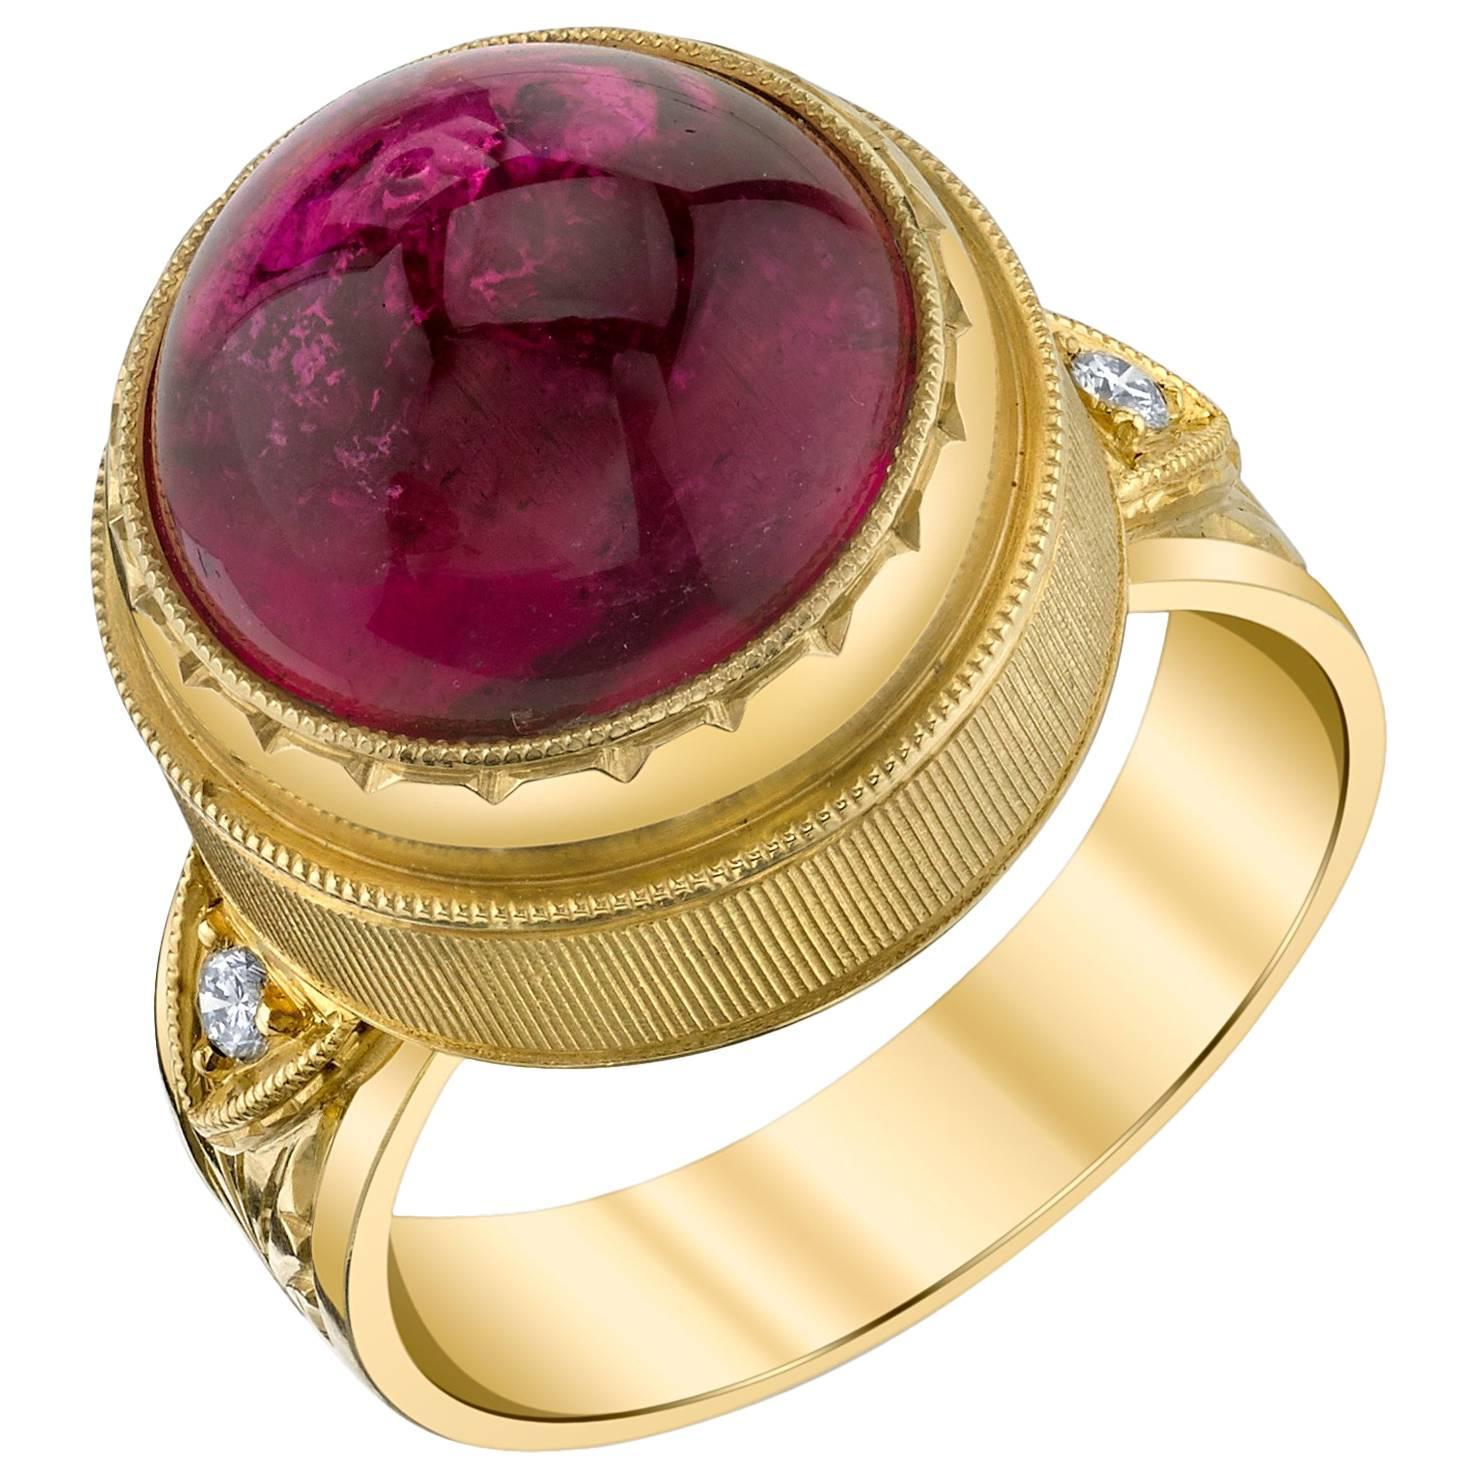 10.75 Carat Rubellite Tourmaline Cabochon Diamond Yellow Gold Engraved Band Ring